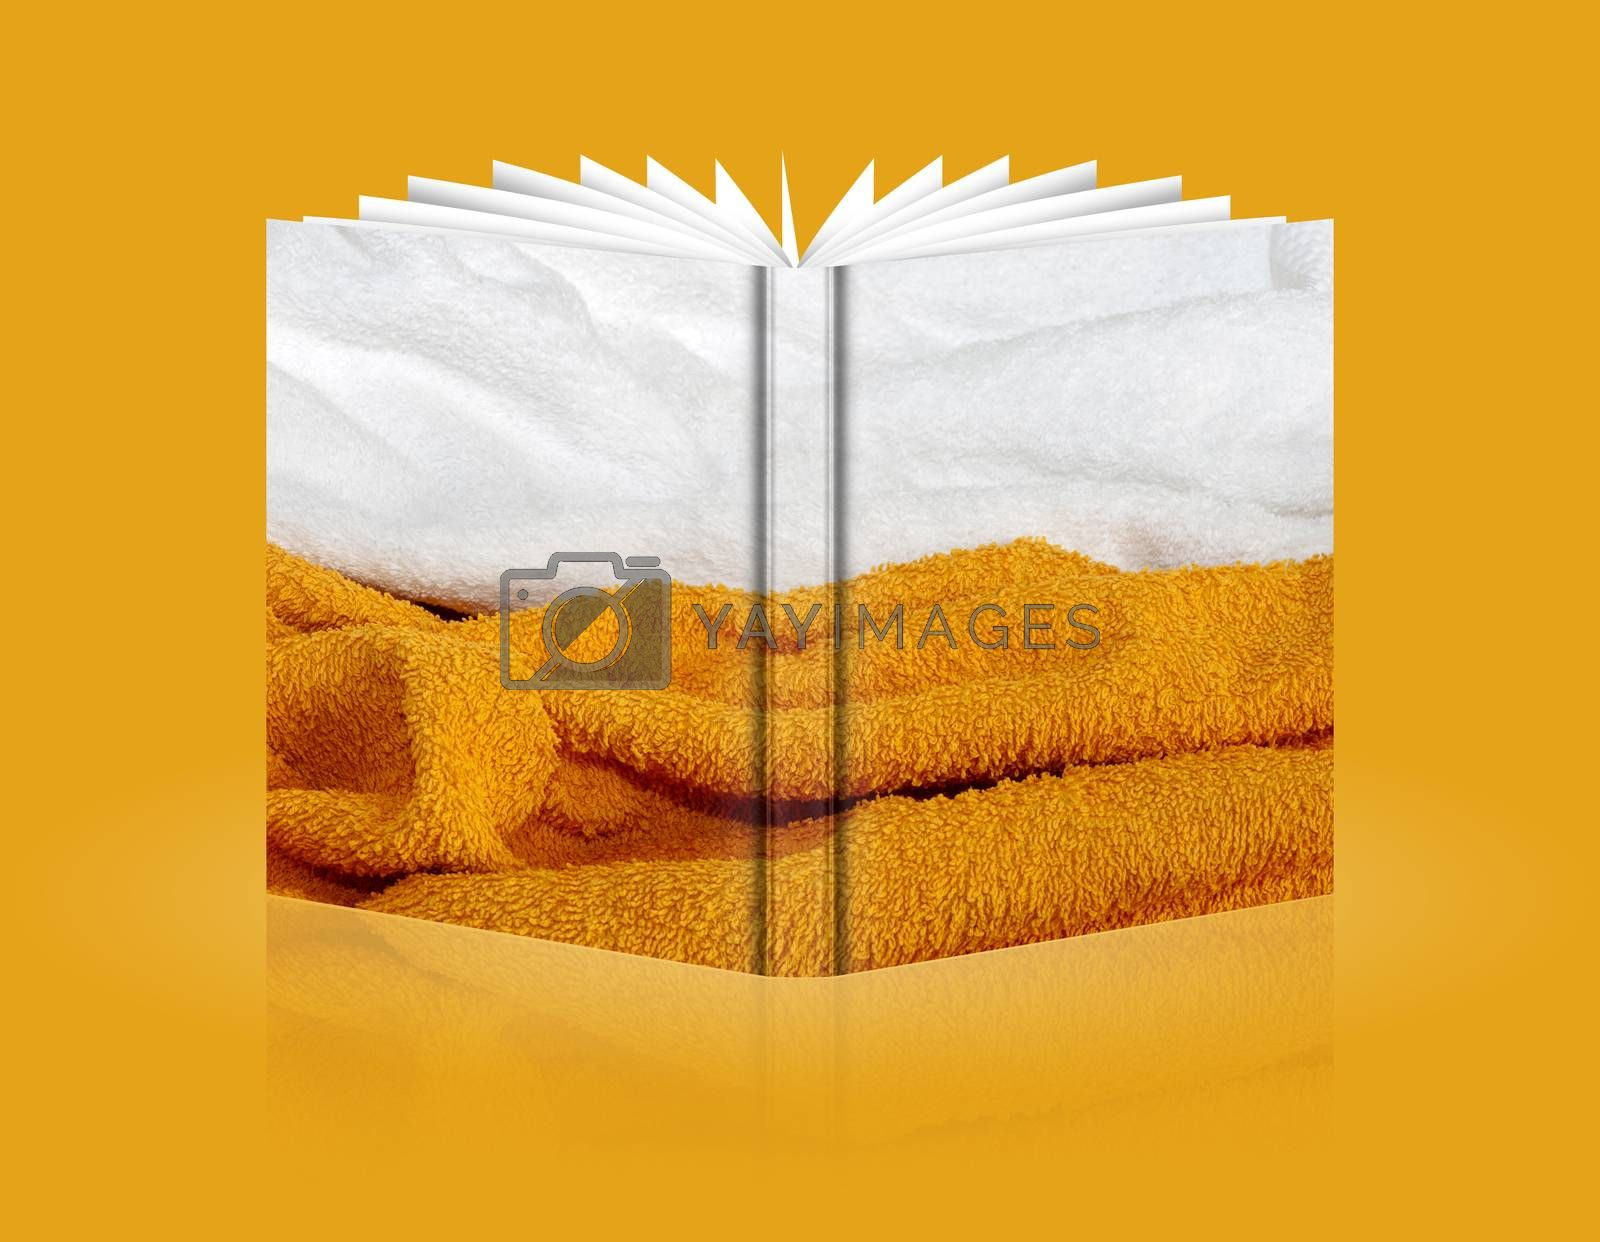 Royalty free image of book of background sponge by carla720